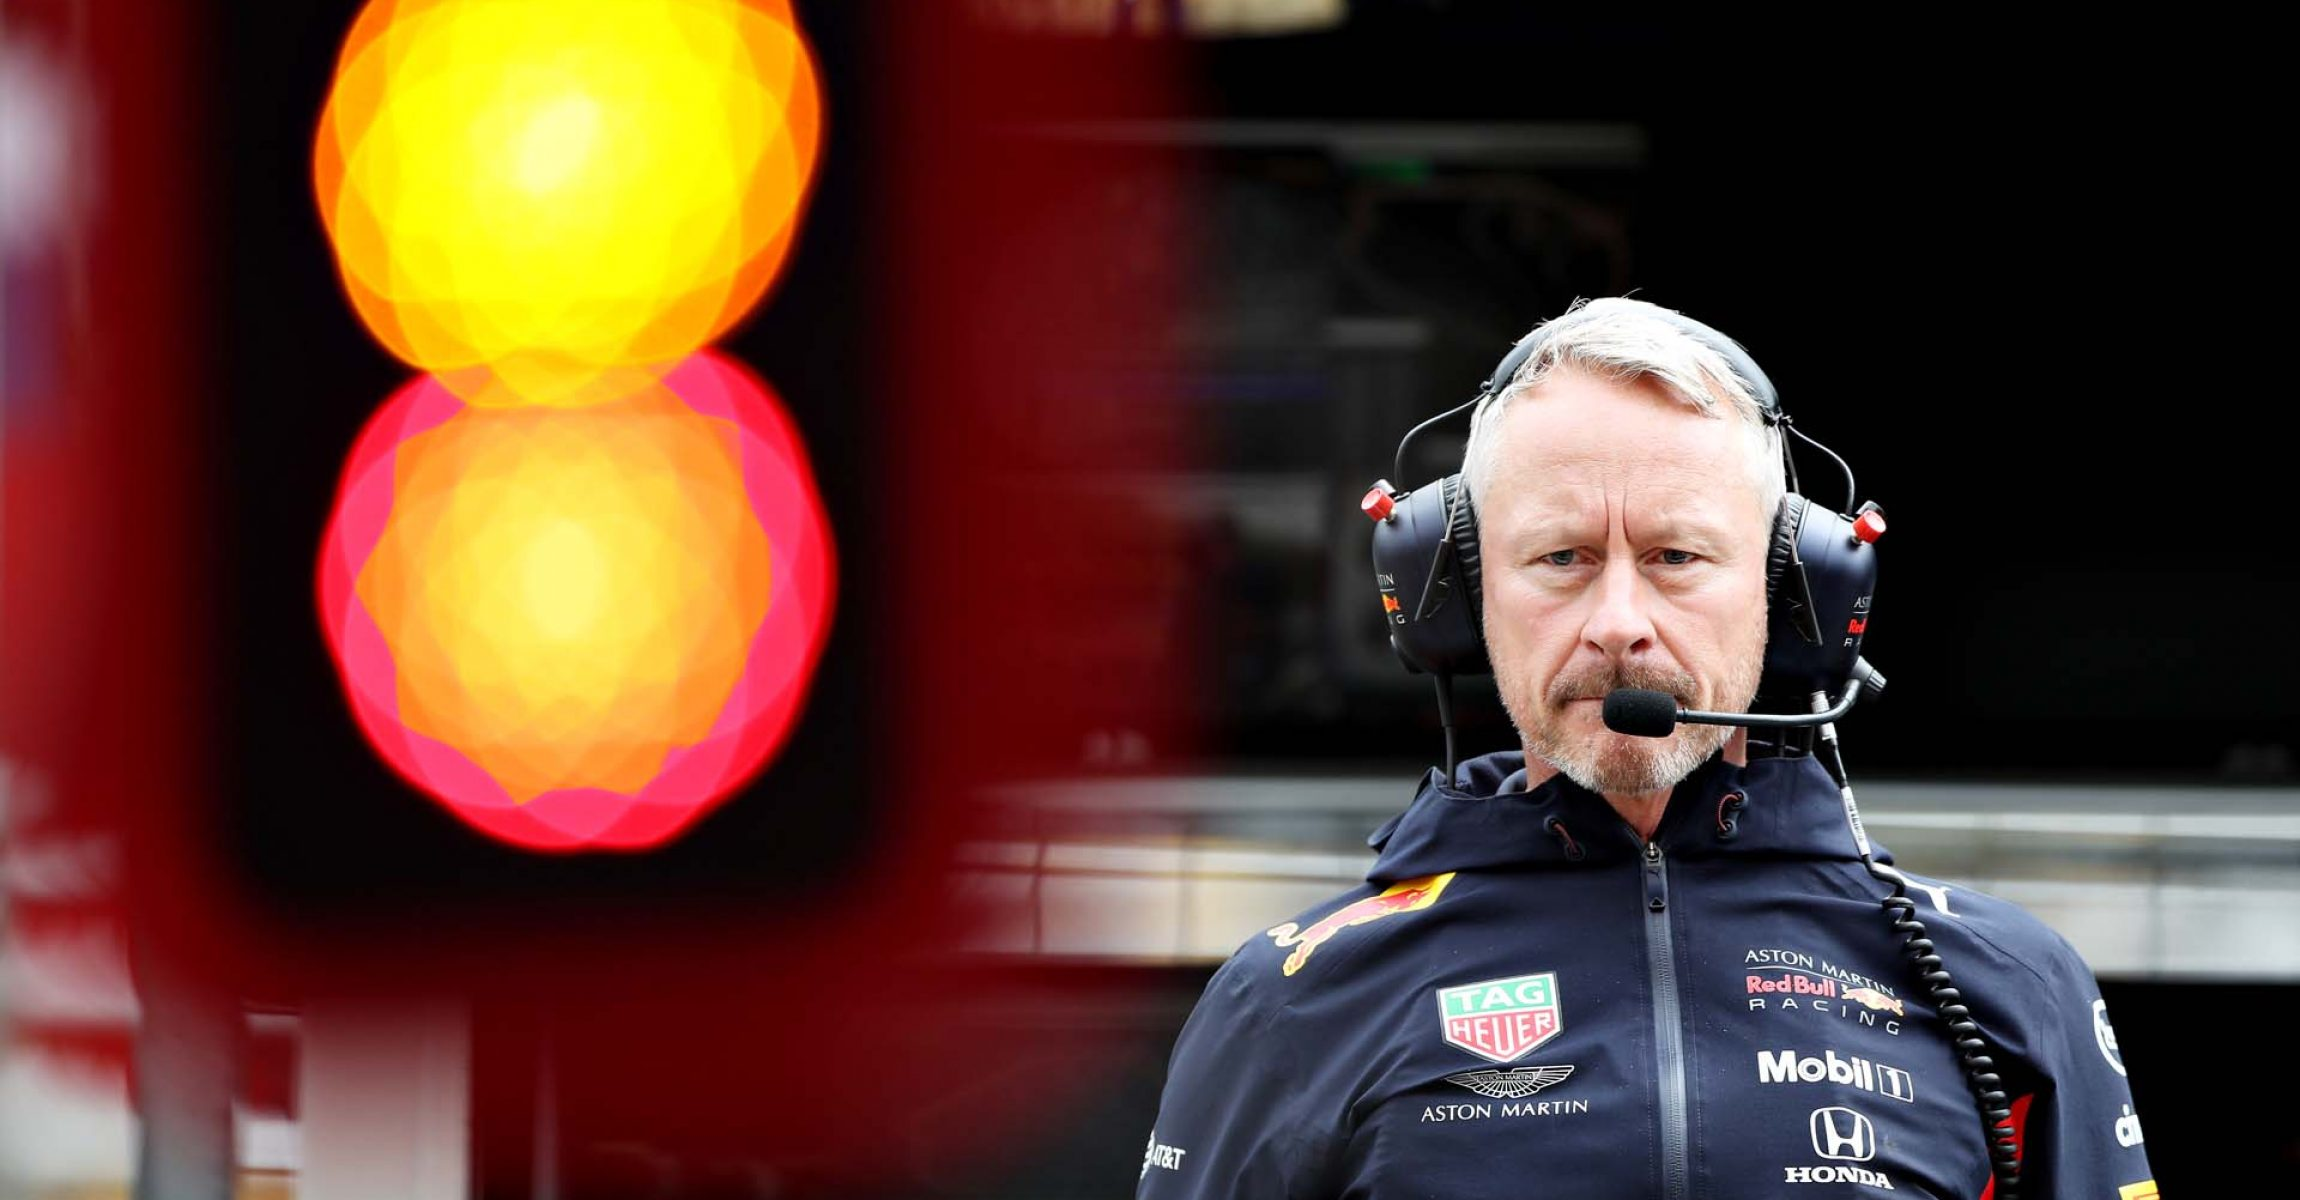 SAO PAULO, BRAZIL - NOVEMBER 15: Red Bull Racing Team Manager Jonathan Wheatley looks on from the pitwall during practice for the F1 Grand Prix of Brazil at Autodromo Jose Carlos Pace on November 15, 2019 in Sao Paulo, Brazil. (Photo by Mark Thompson/Getty Images) // Getty Images / Red Bull Content Pool  // AP-226QQUEFD1W11 // Usage for editorial use only //